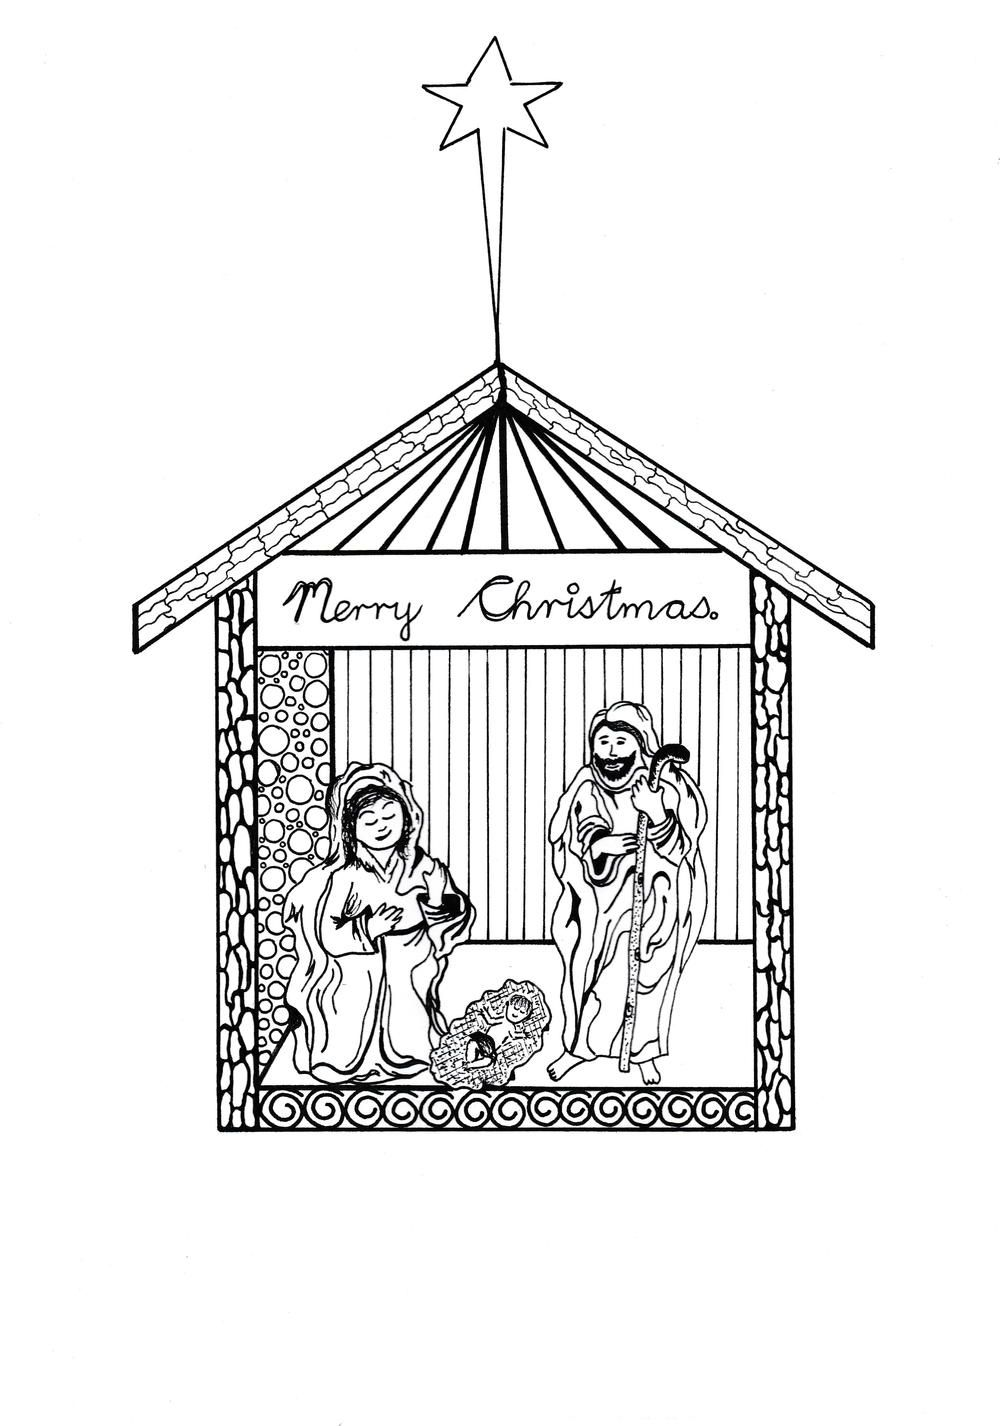 Free Printable Nativity Scene Coloring Pages Nativity Coloring Nativity Coloring Pages Christmas Coloring Pages